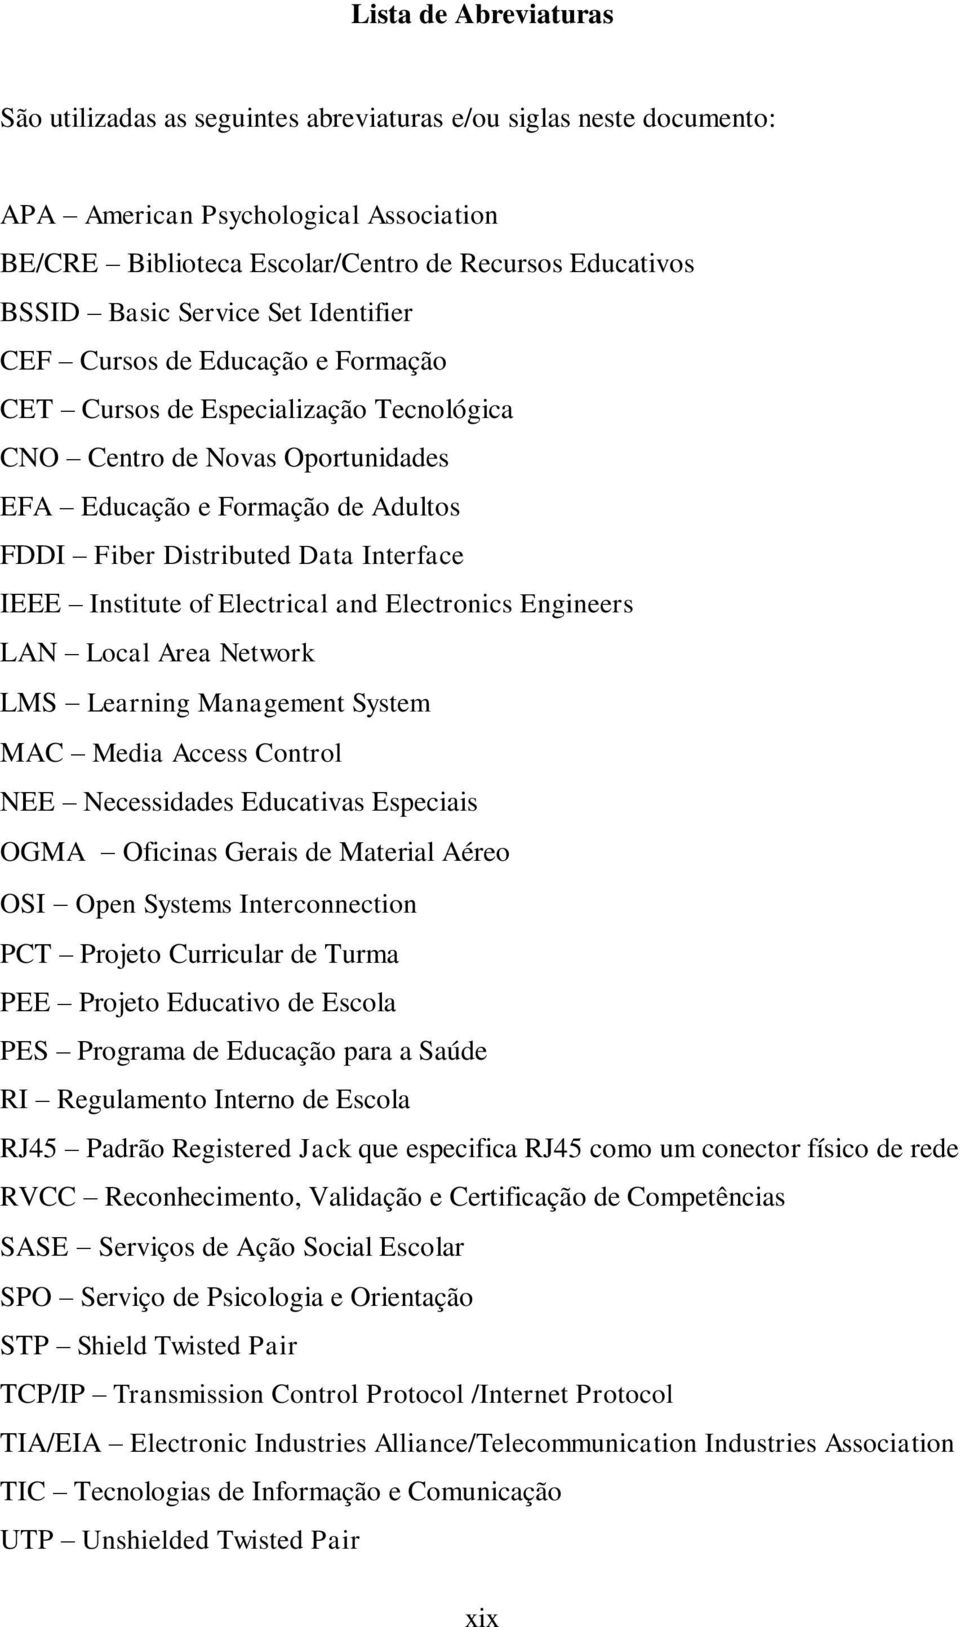 Interface IEEE Institute of Electrical and Electronics Engineers LAN Local Area Network LMS Learning Management System MAC Media Access Control NEE Necessidades Educativas Especiais OGMA Oficinas